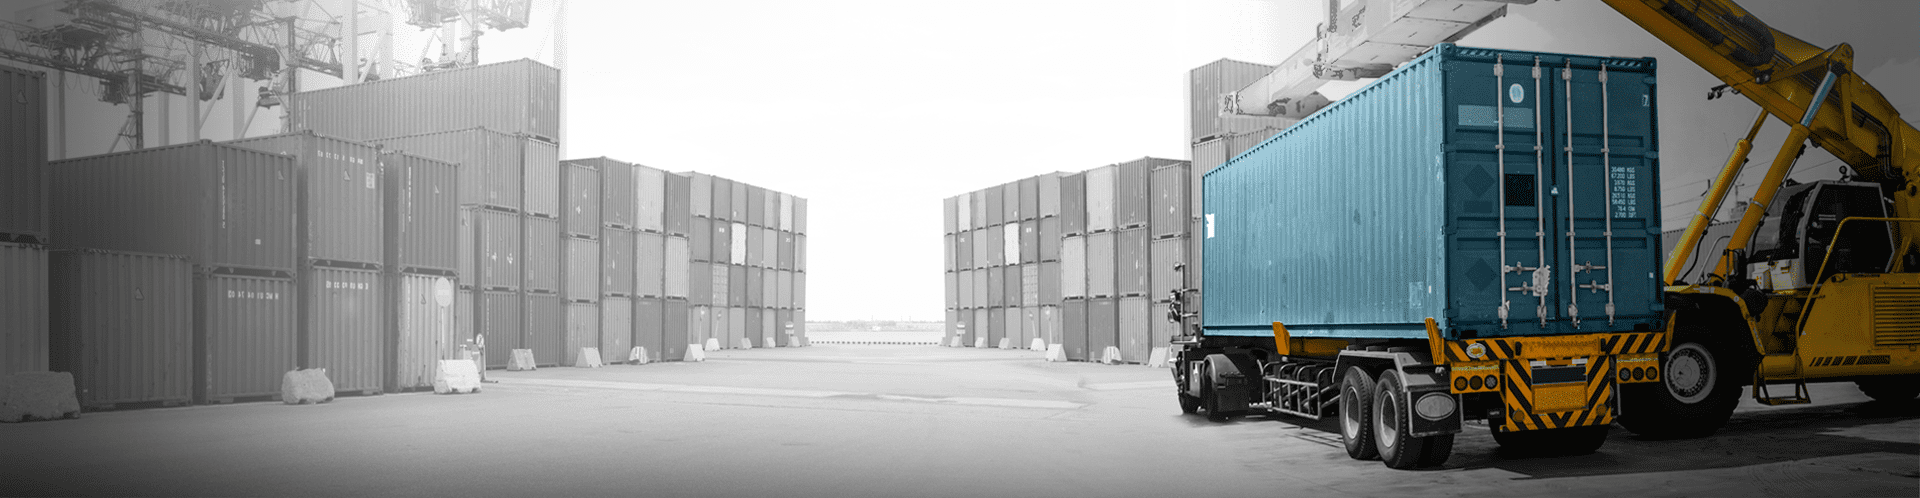 A shipyard full of shipping containers, the front shipping container and forklift are in color, the rest in black and white